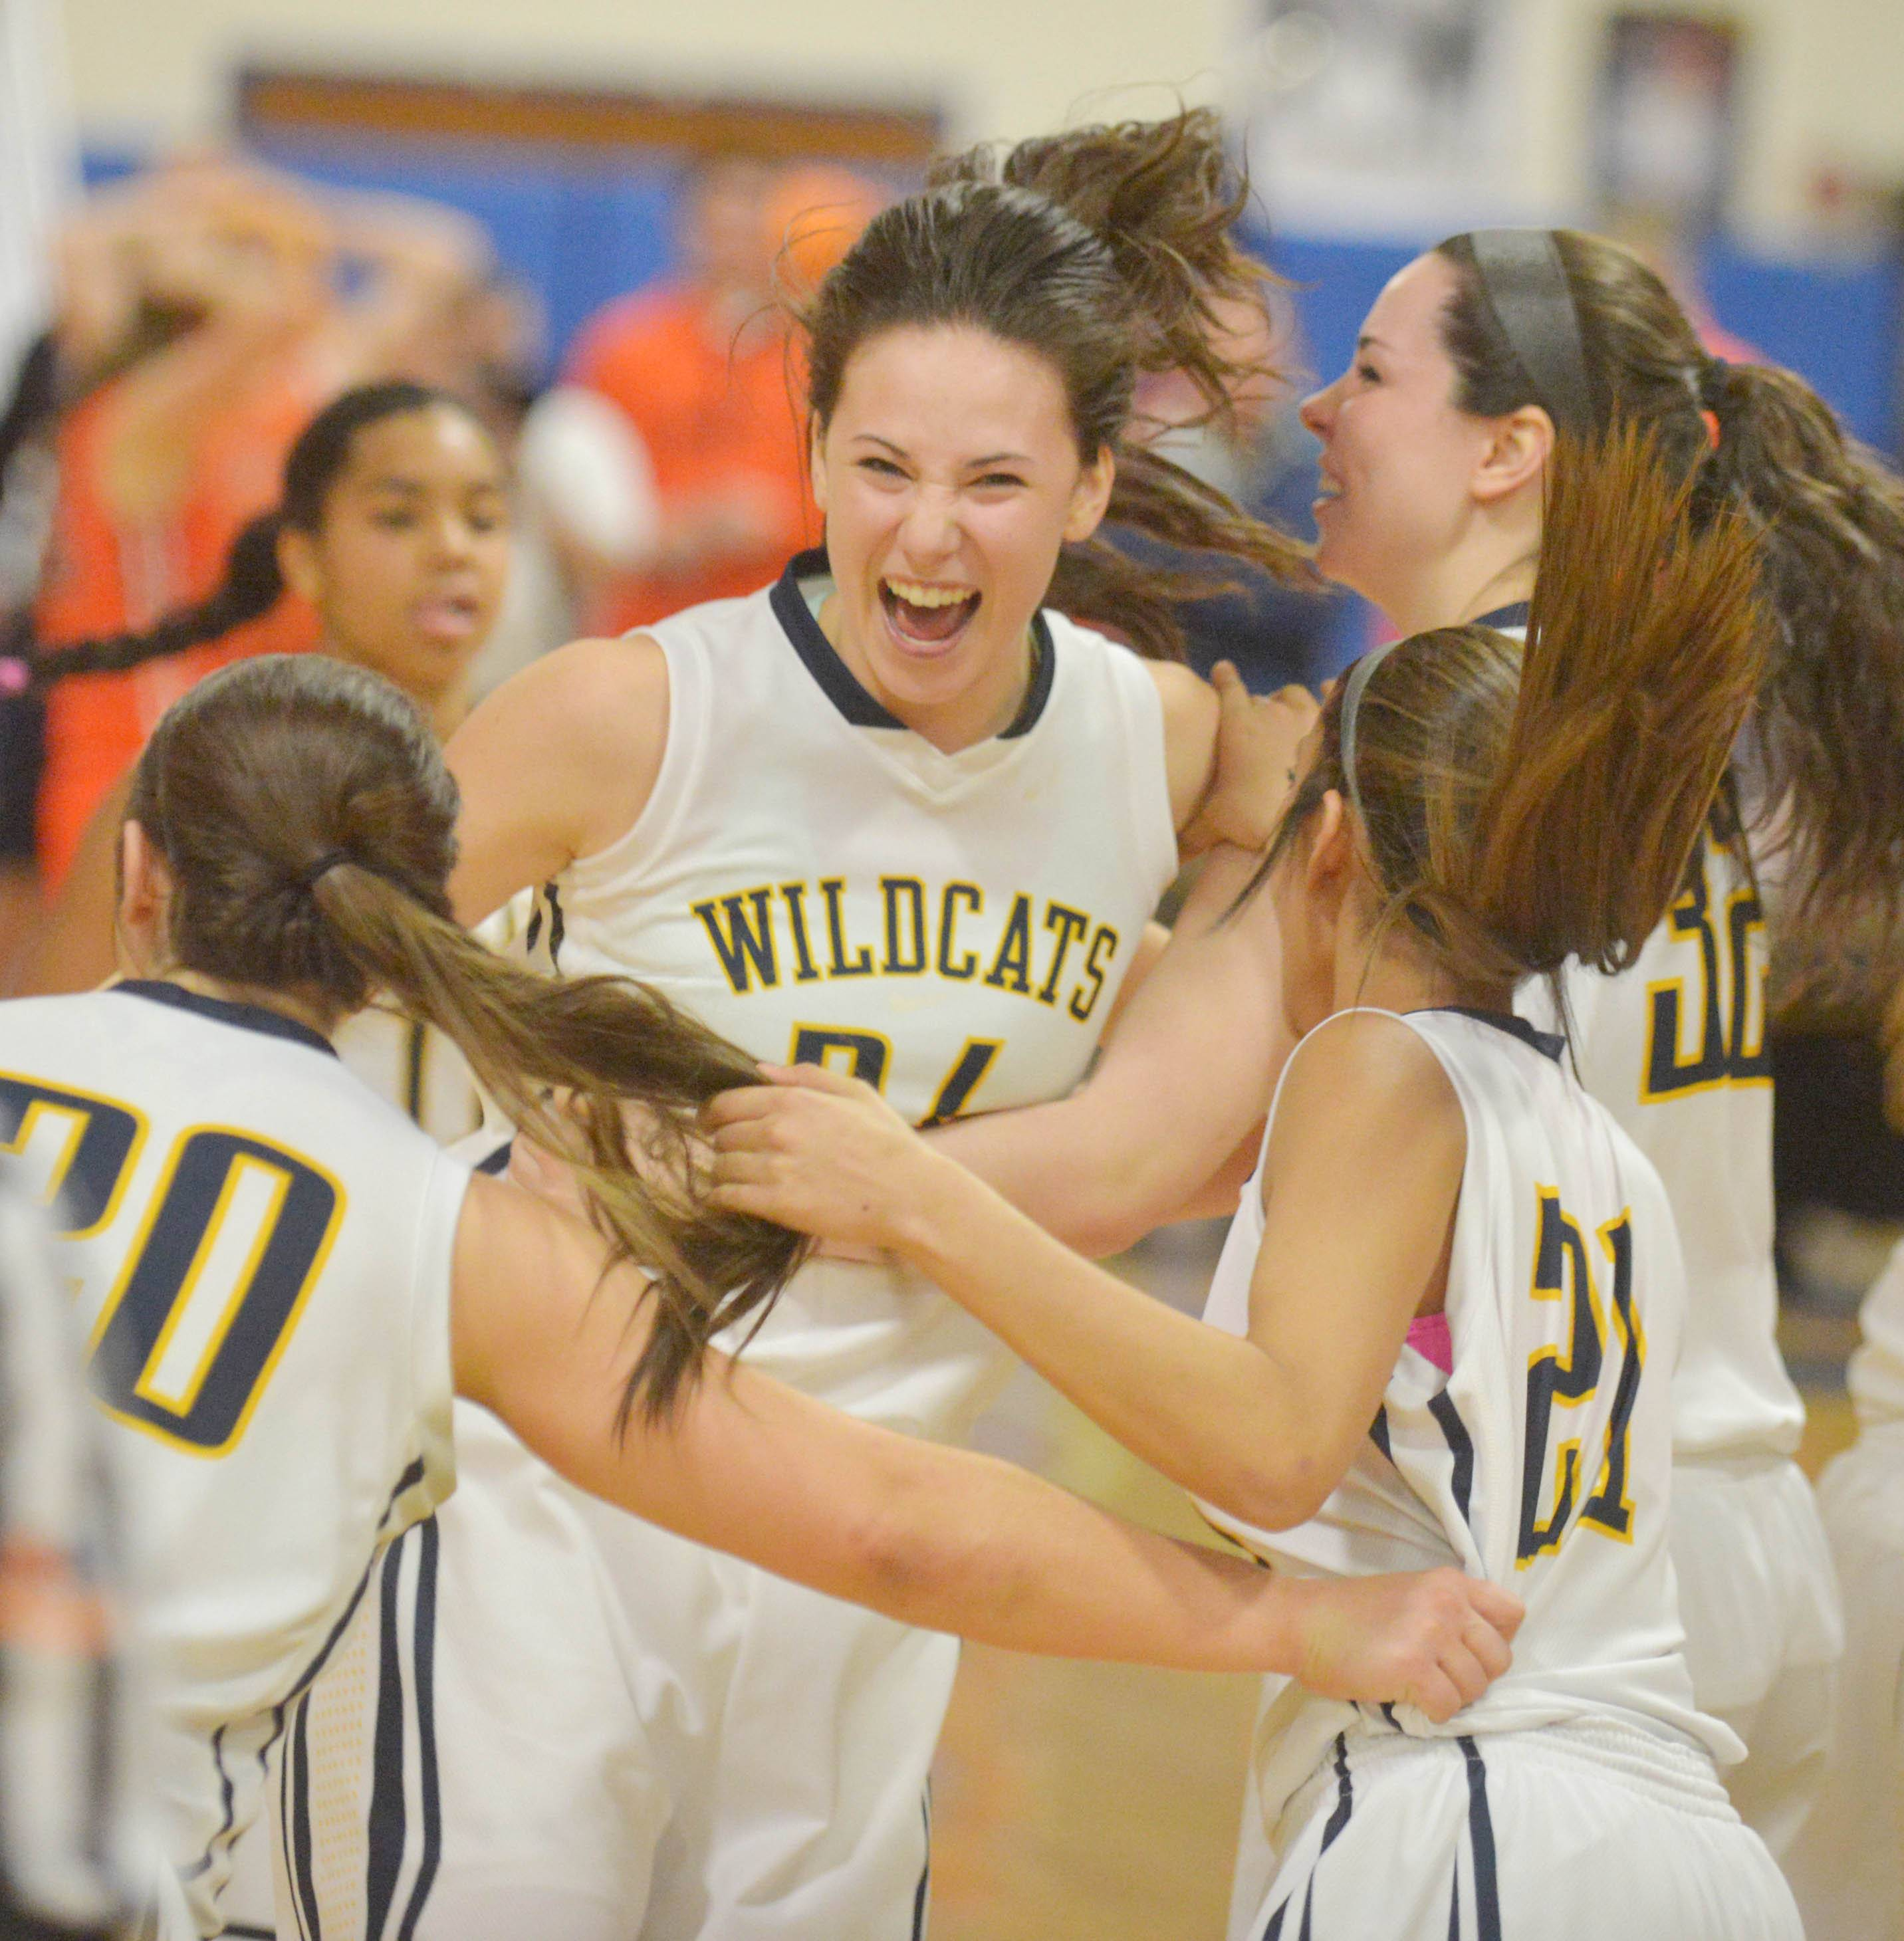 (24) Bryce Menendez of Neuqua can't hold back the smiles after the big win during the Neuqua Valley vs. Oswego Class 4A Joliet Central girls basketball sectional final Thursday.  She was bing hugged by (20) Niki Lazar (21) Kiran Rehal and (32) Gwen Berglind.